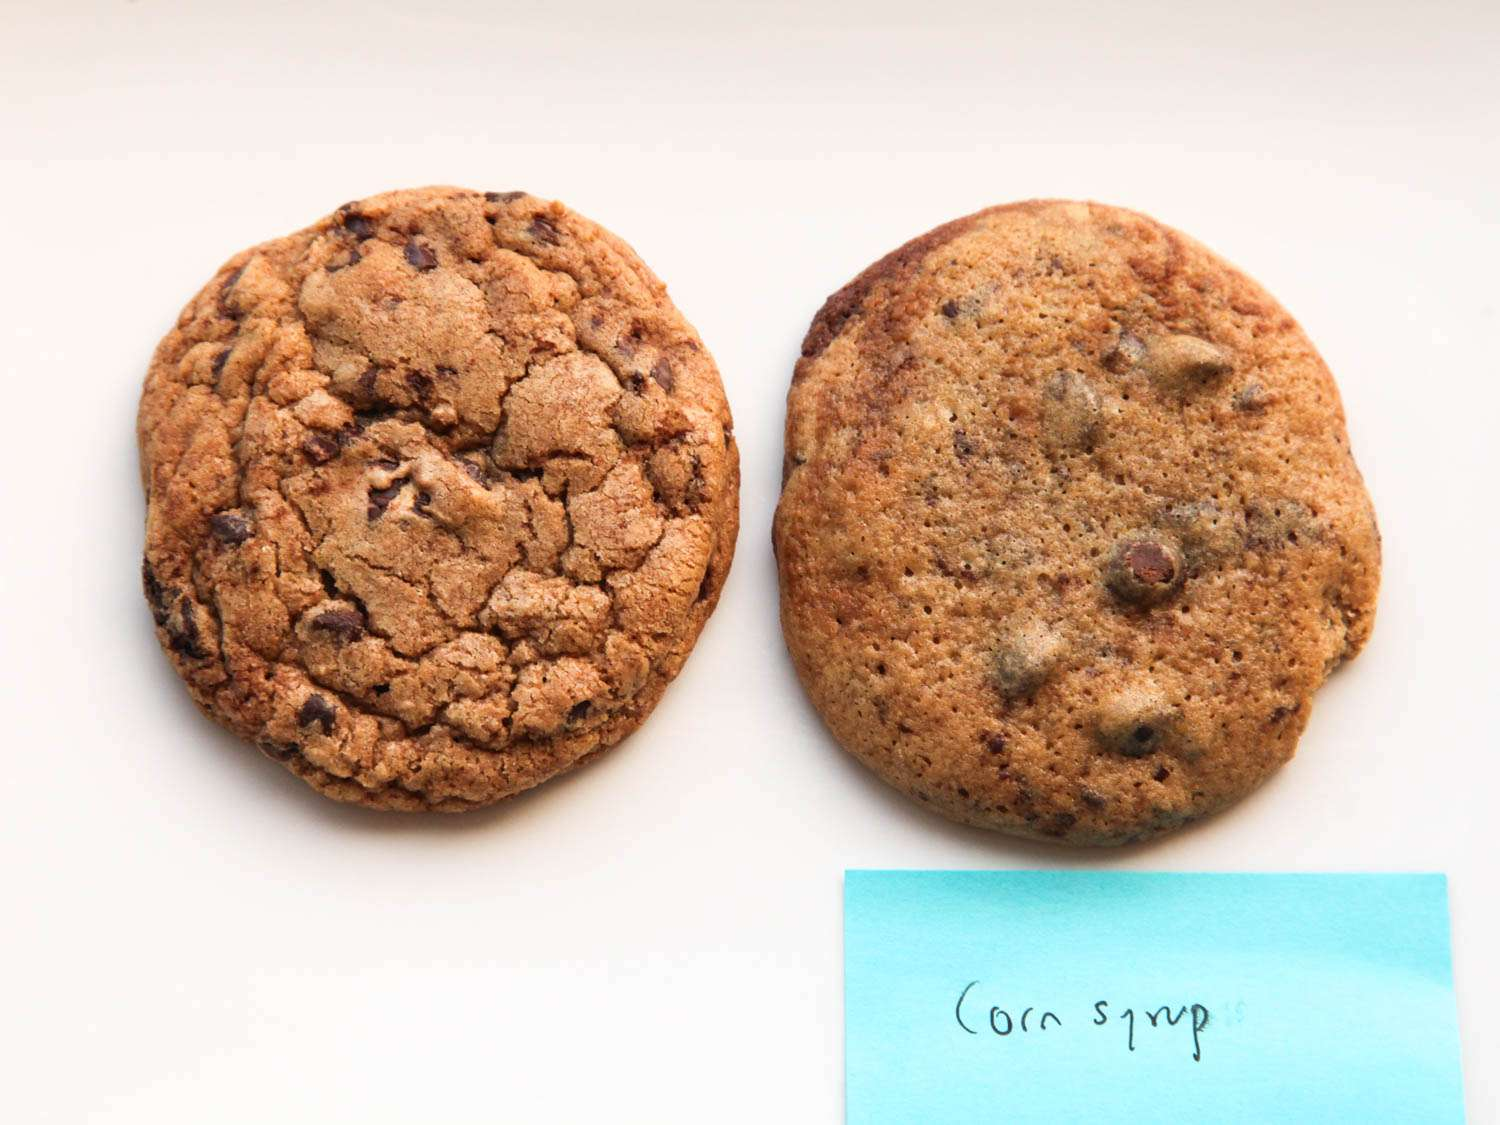 Side by side photograph showing chocolate chip cookies made with granulated and brown sugar (left) and corn syrup (right).